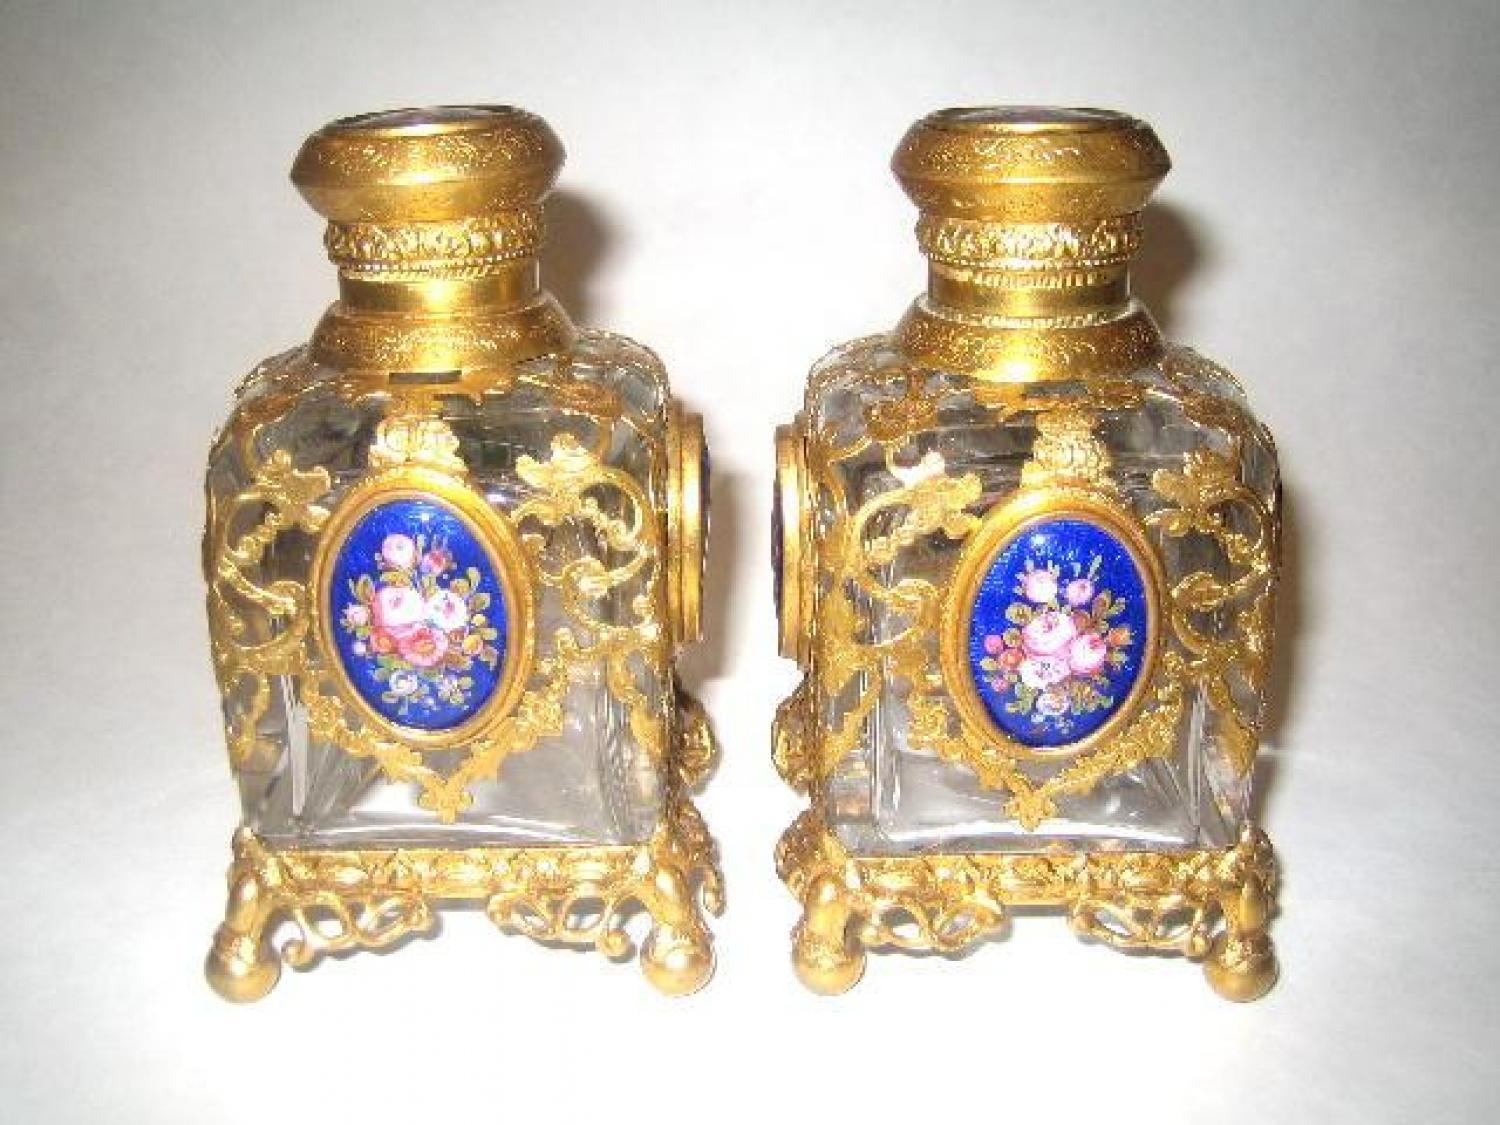 Pair of French Glass Scent Bottles